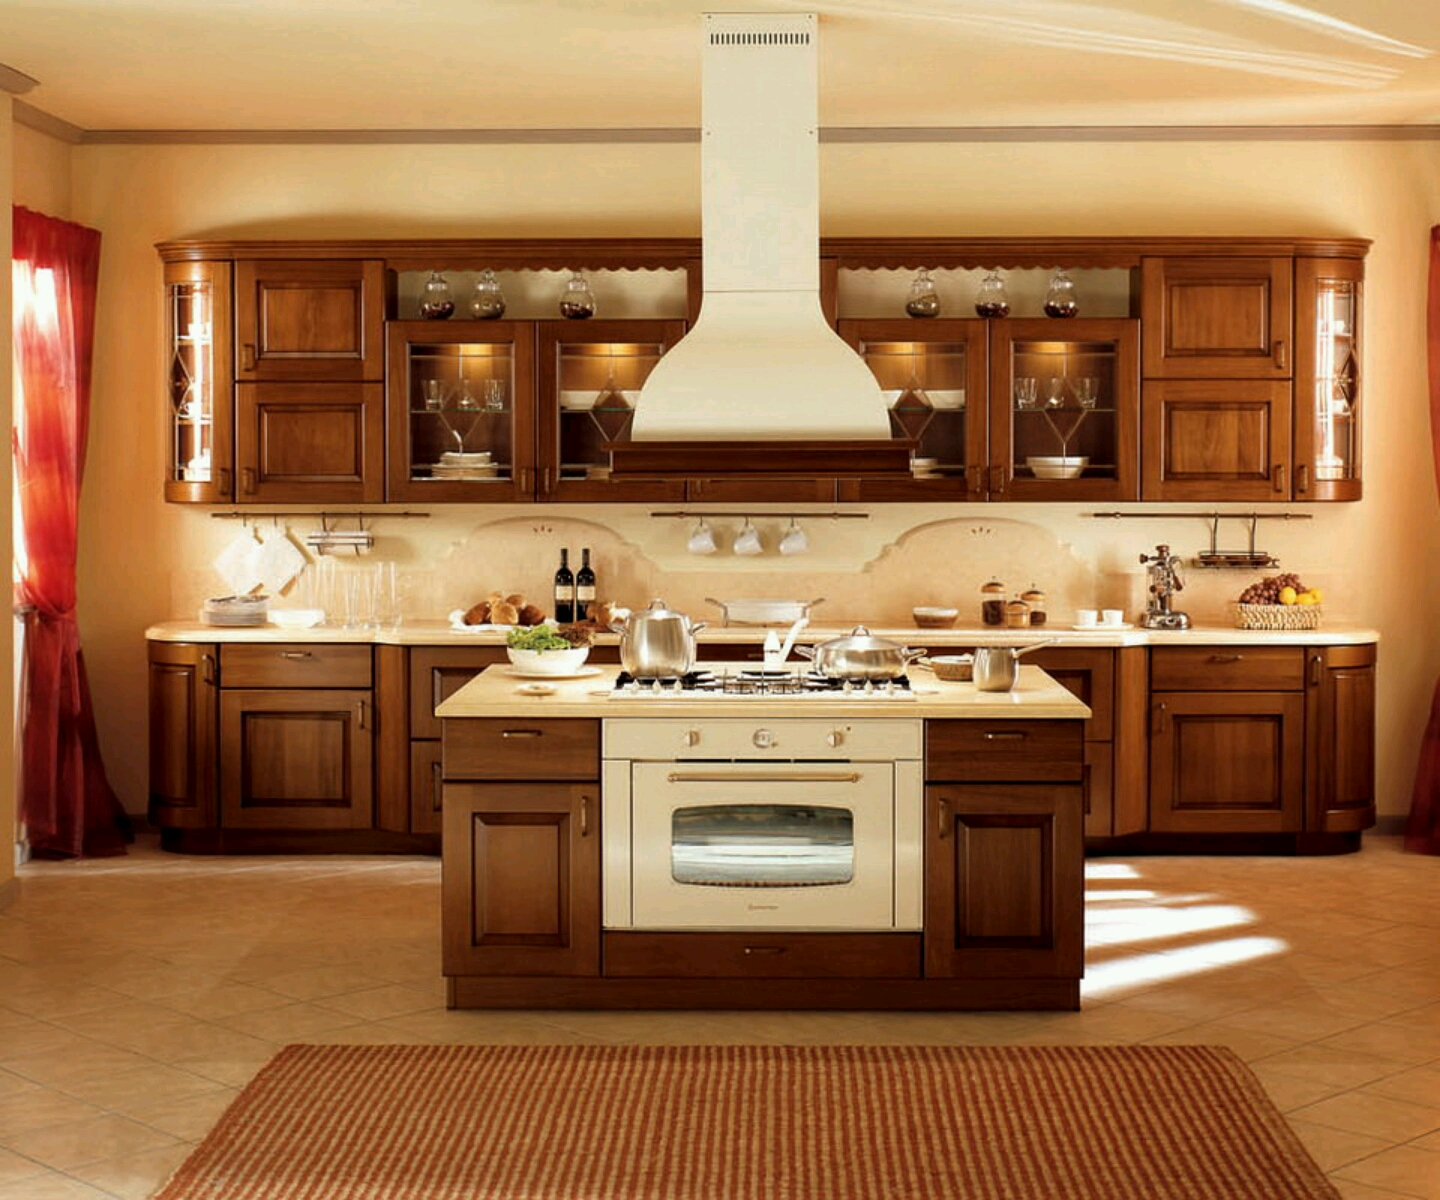 New home designs latest modern kitchen cabinets designs for Muebles design